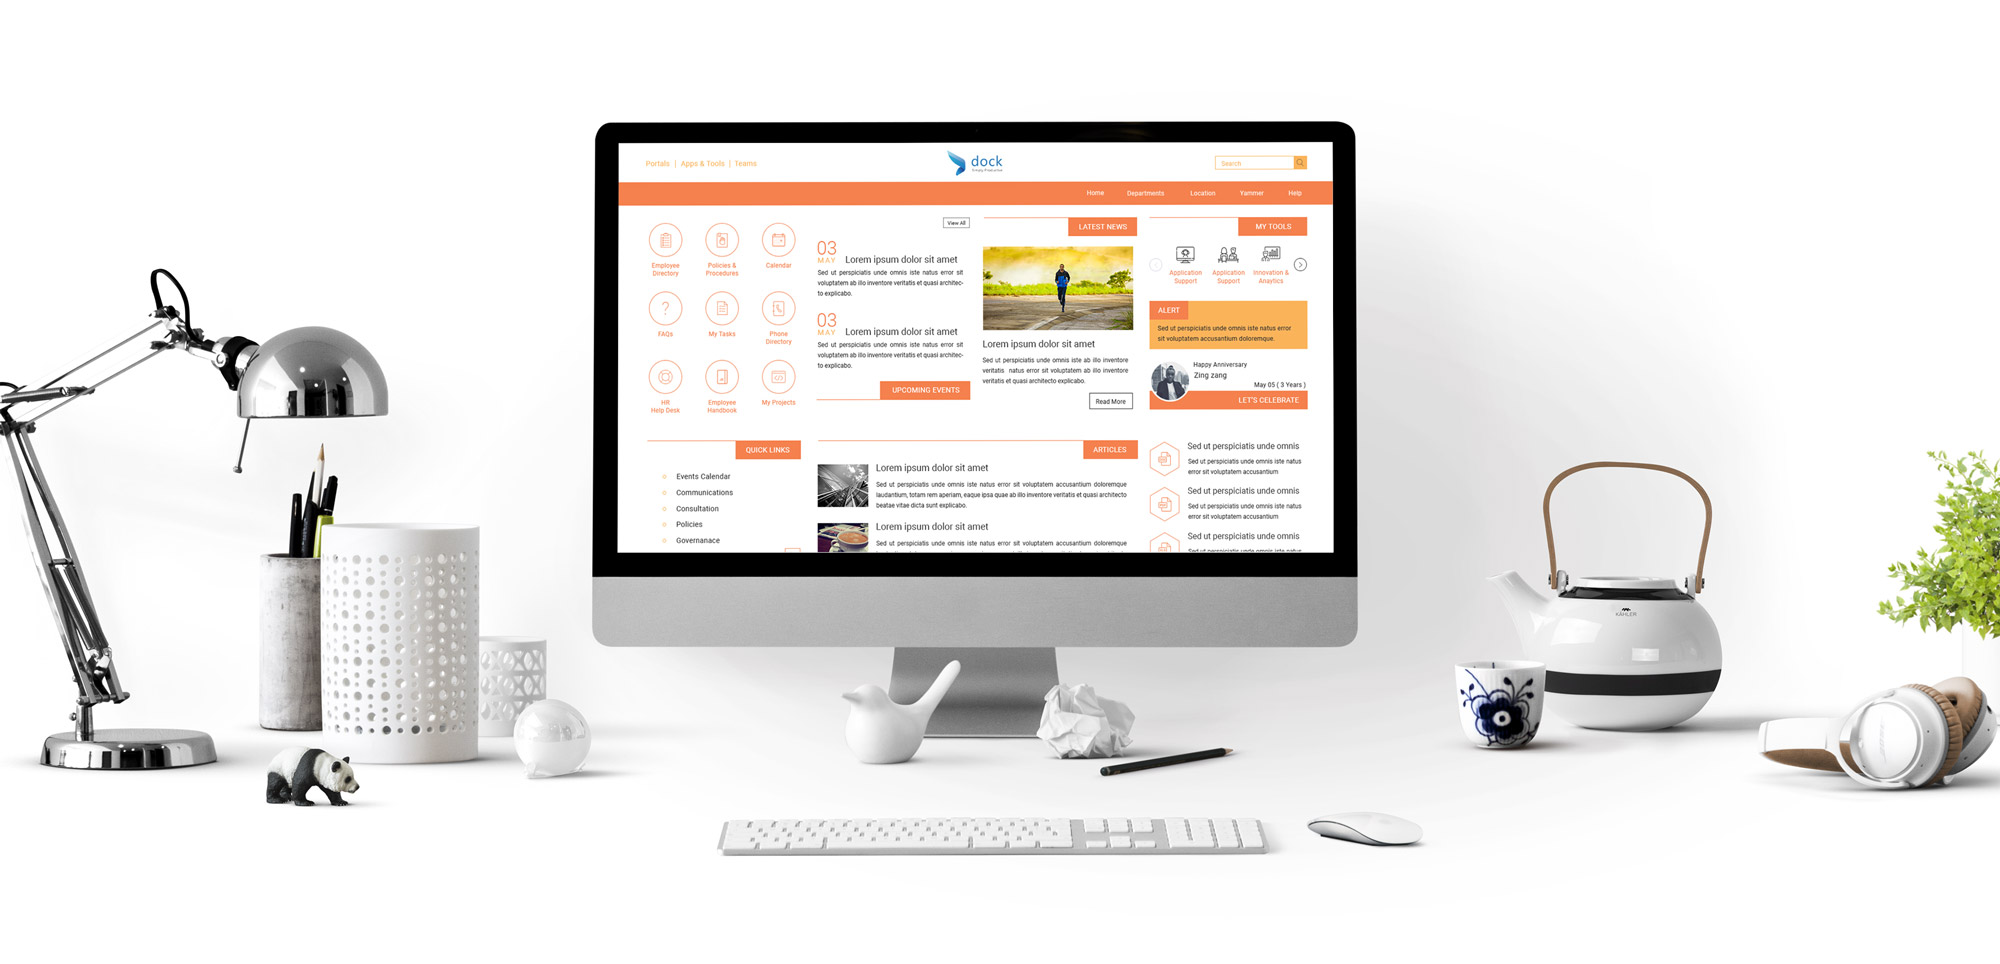 sharepoint-collaboration-site